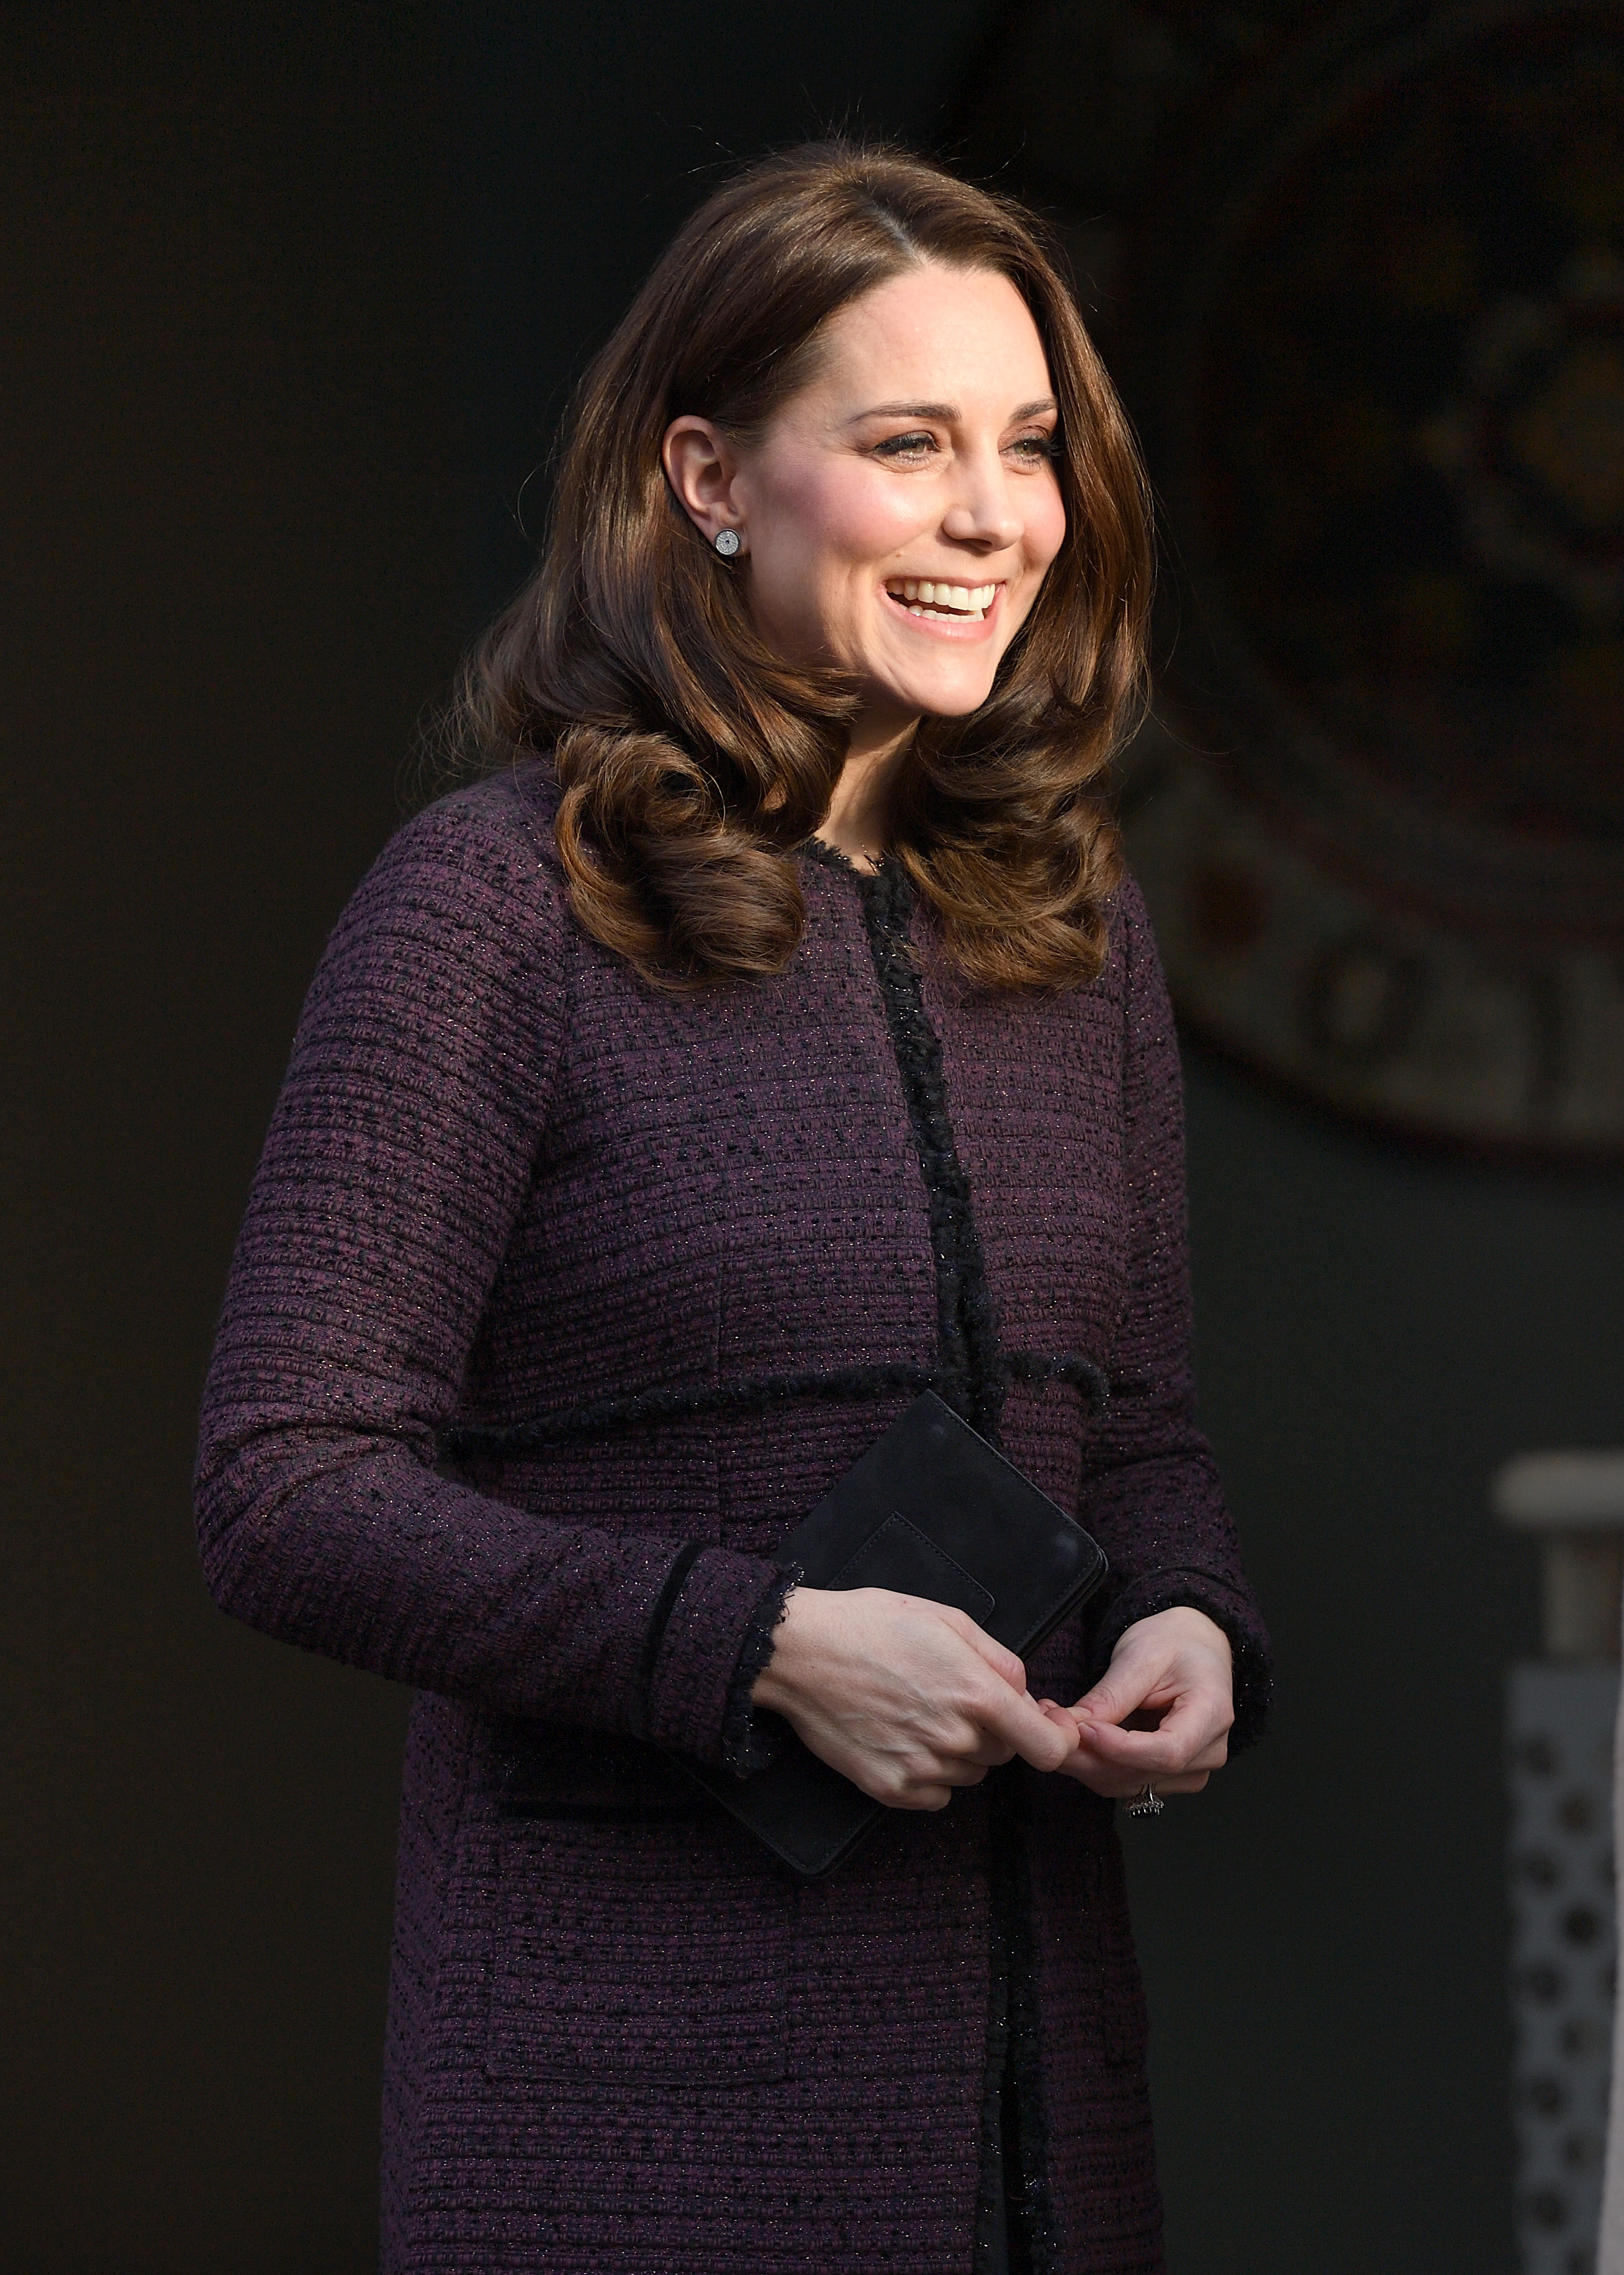 Kate-Middleton-Is-Radiant-In-Plum-Colored-Coat-As-She-Delivers-Presents-To-Kids-In-London